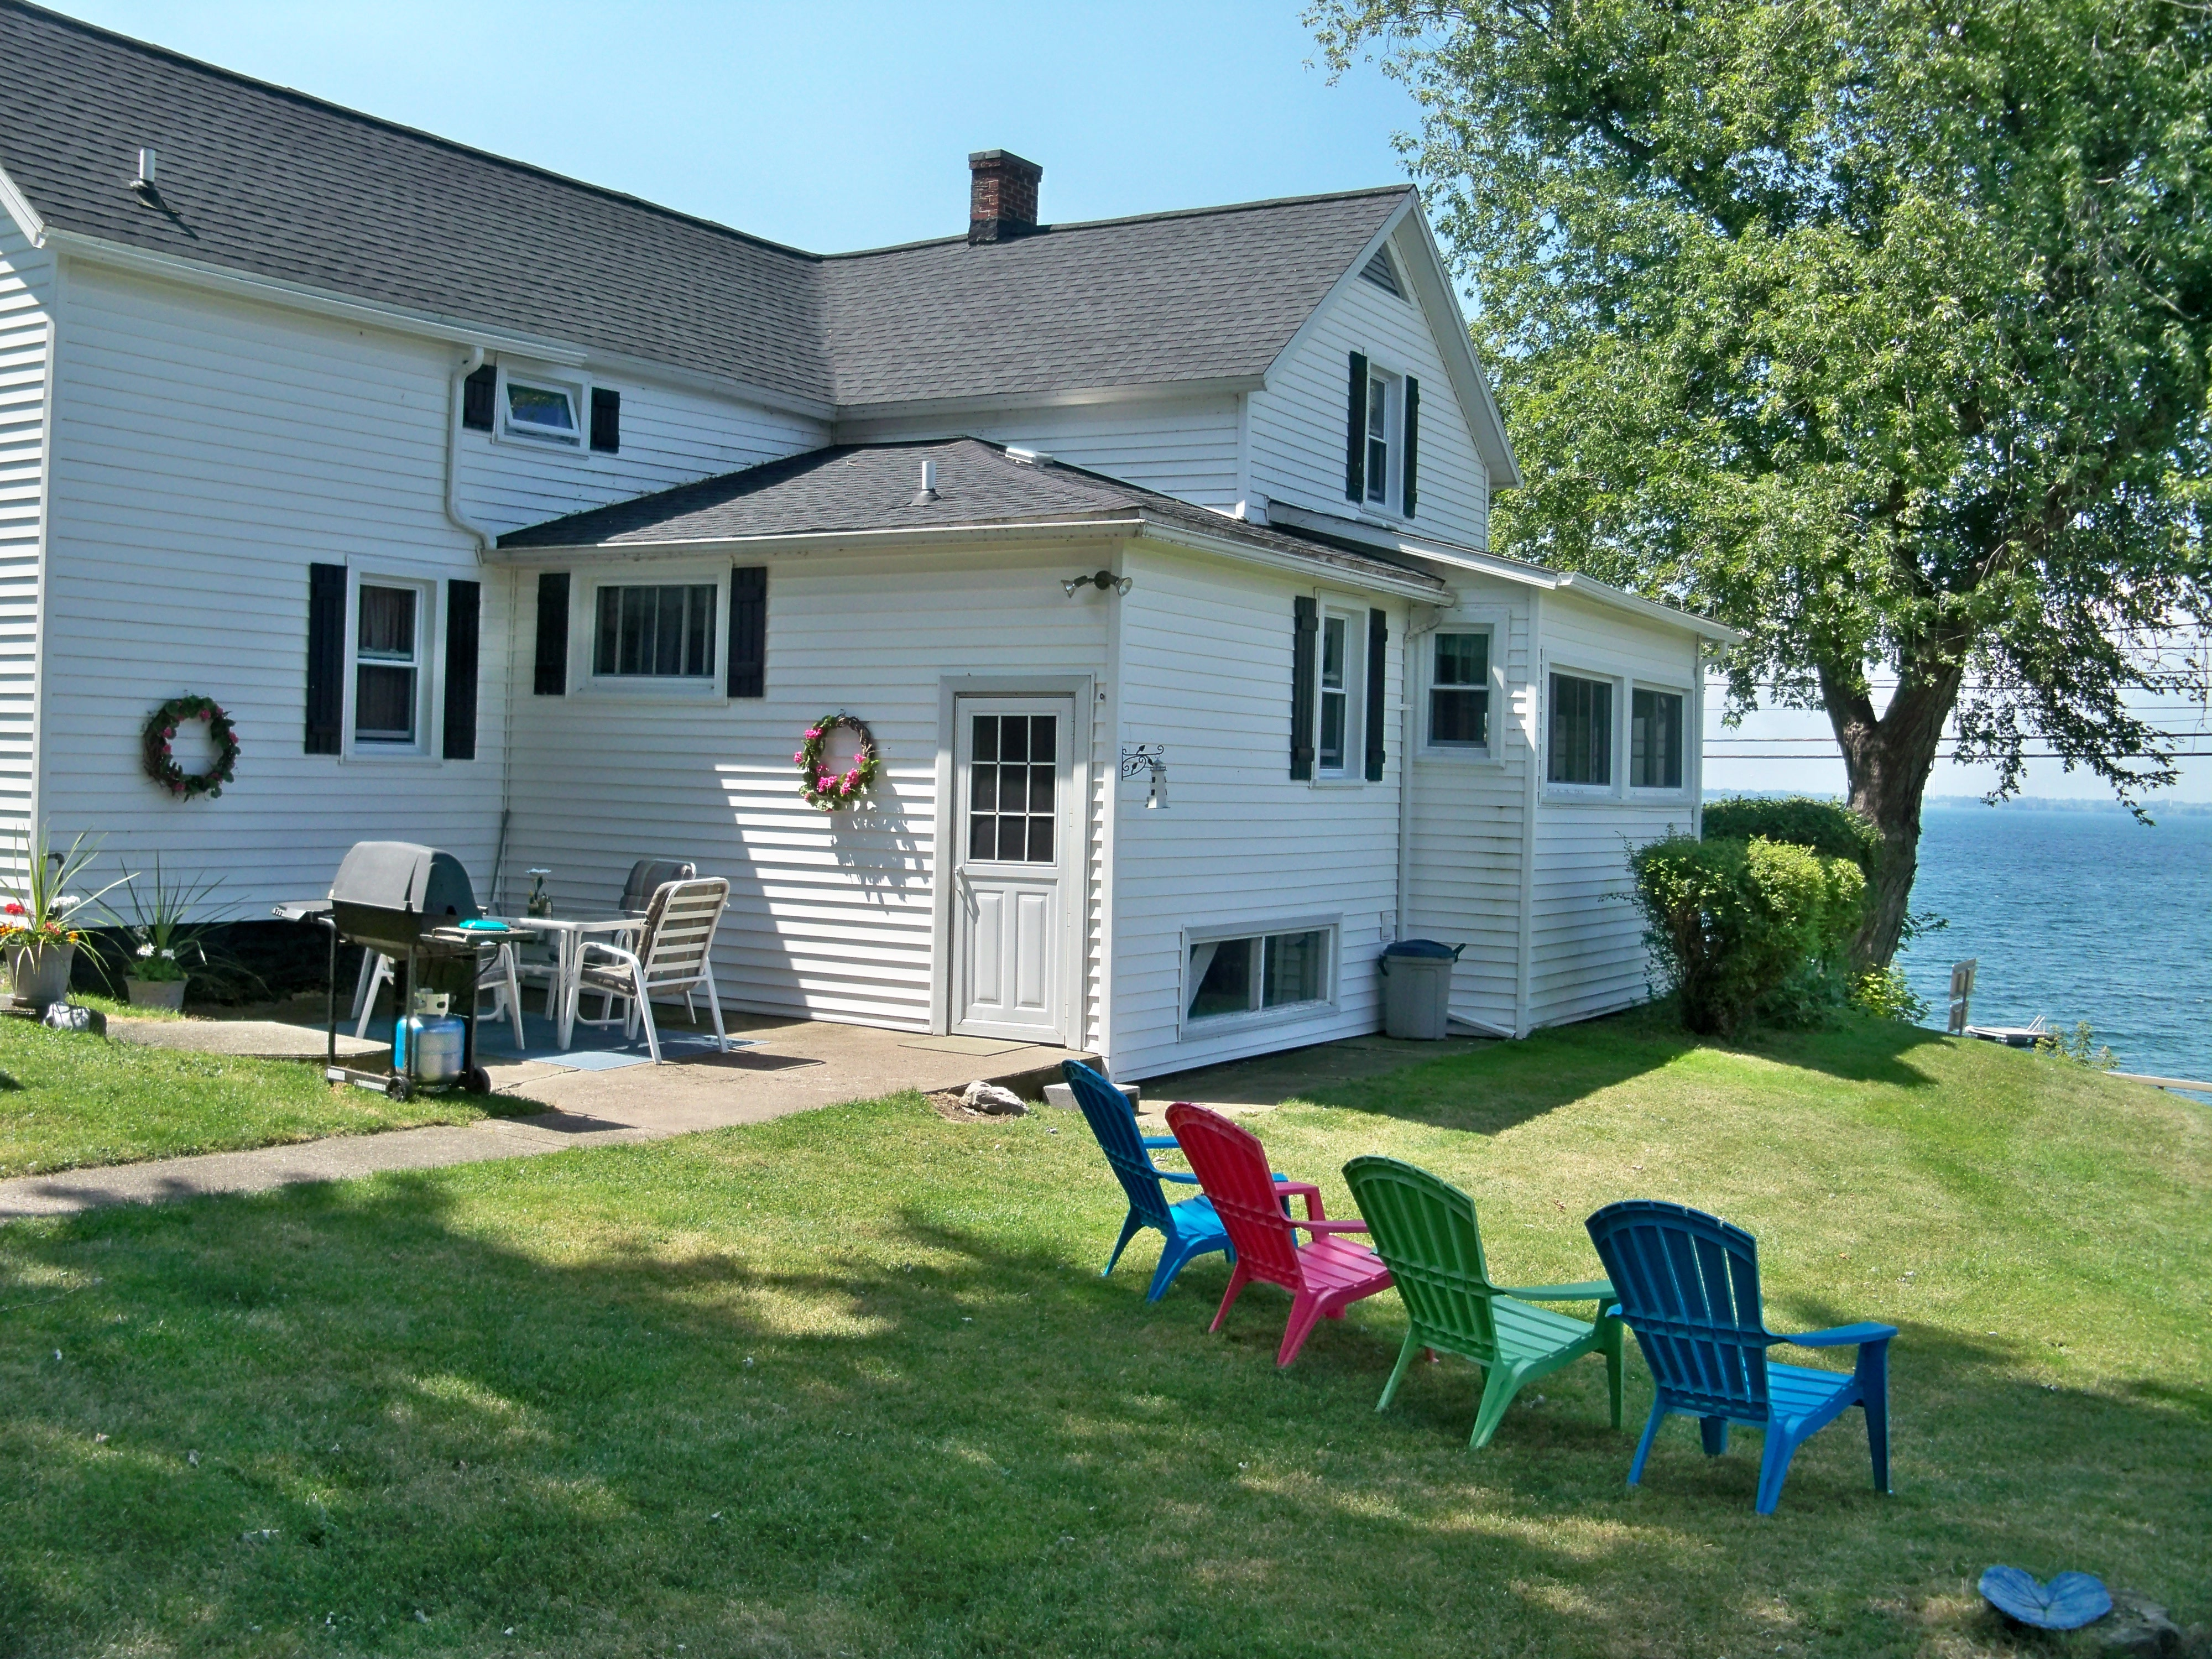 Waterfront Summer Vacation House Cape Vincent, NY 1000 Islands Family  Reunion Thousand Islands Backyard Patio Barbecue Family Gatherings